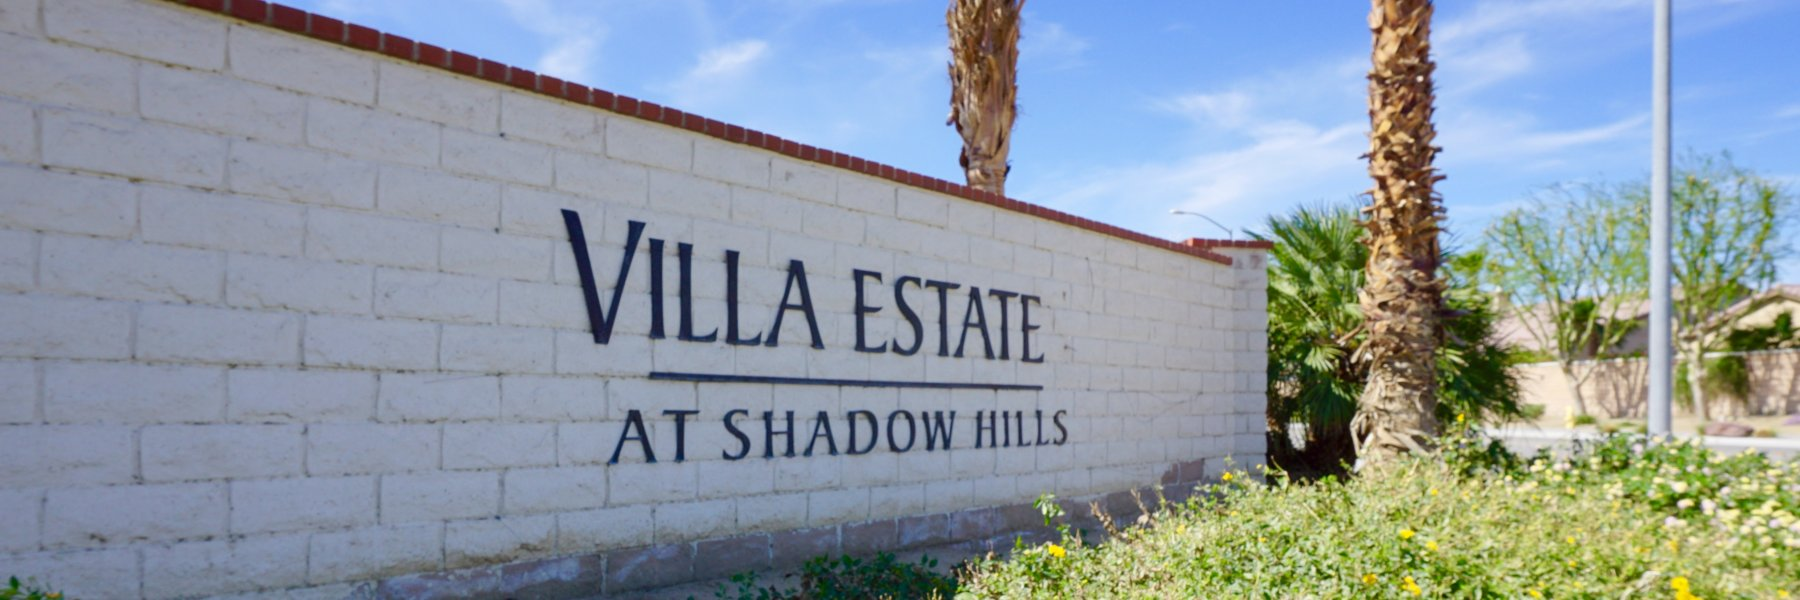 Shadow Hills Villas is a neighborhood of homes in Indio California